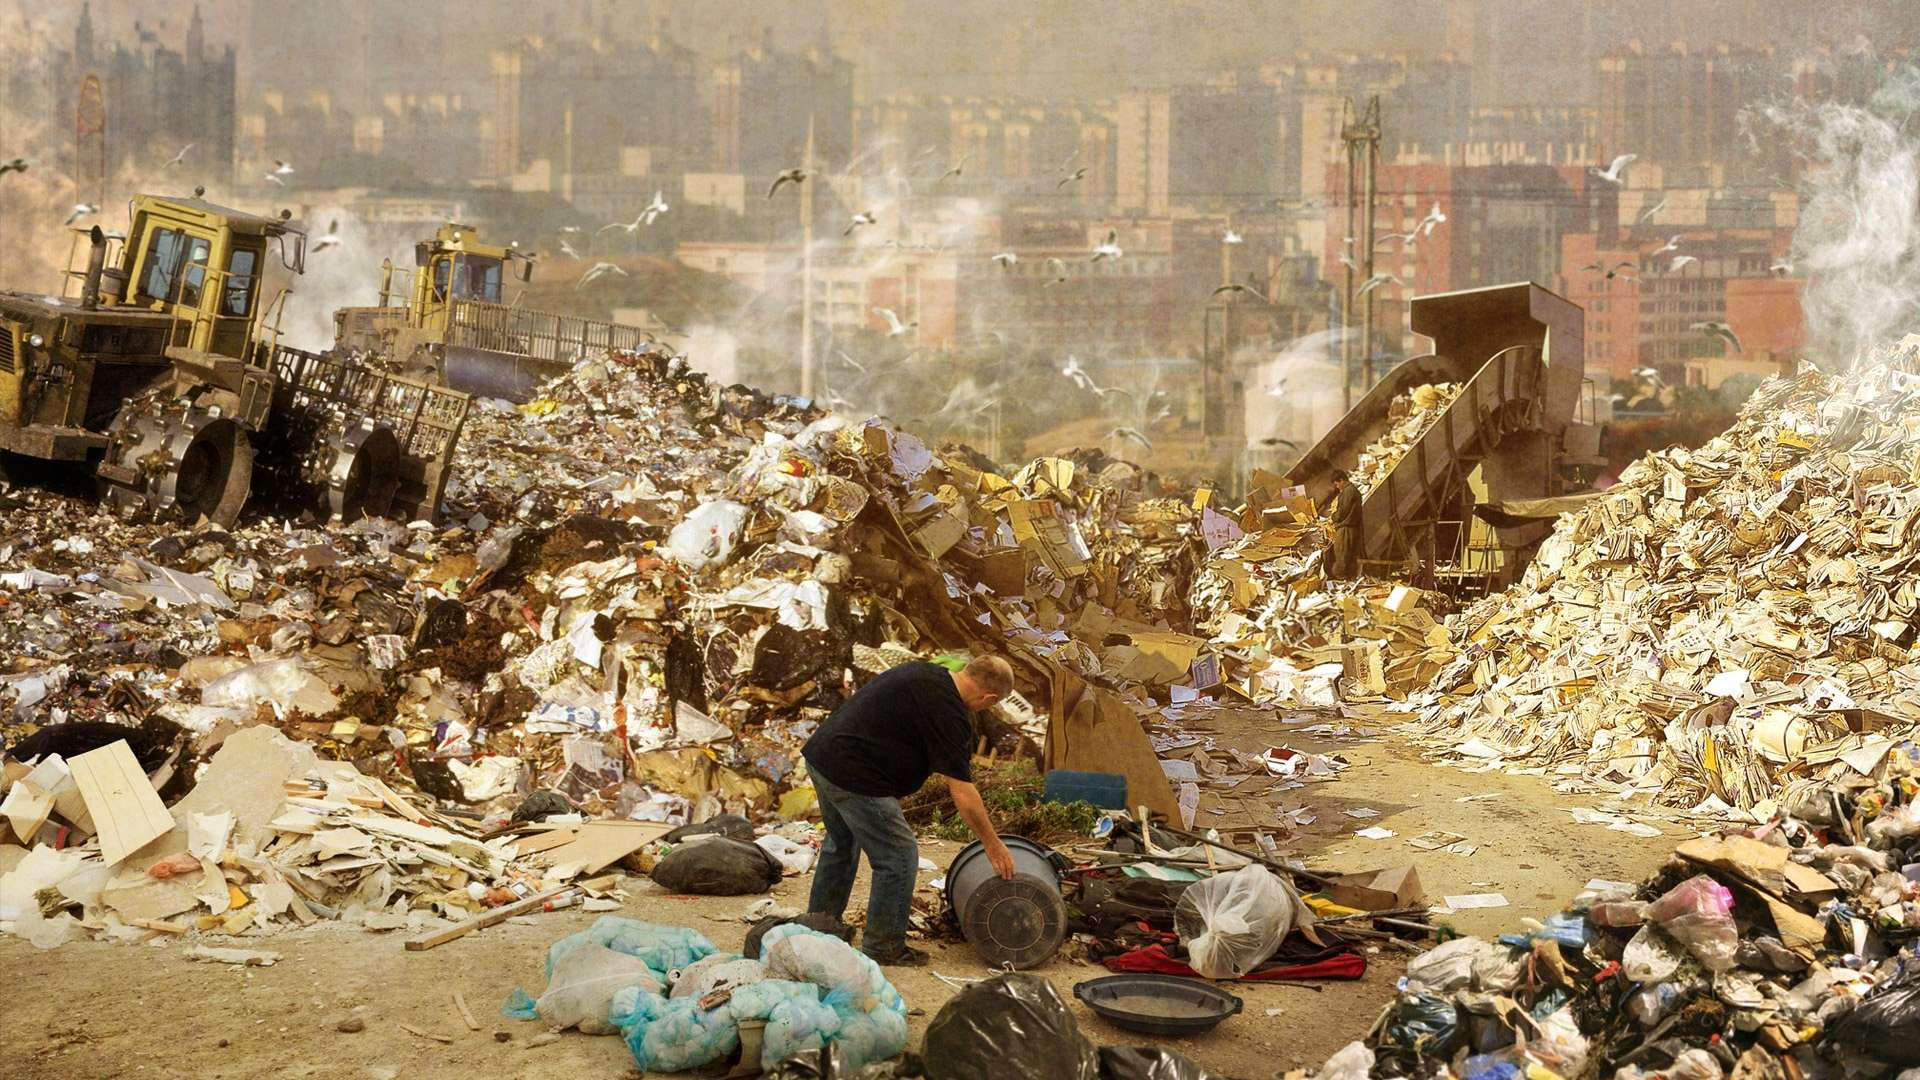 The waste problem is growing with little understanding of how best to control it